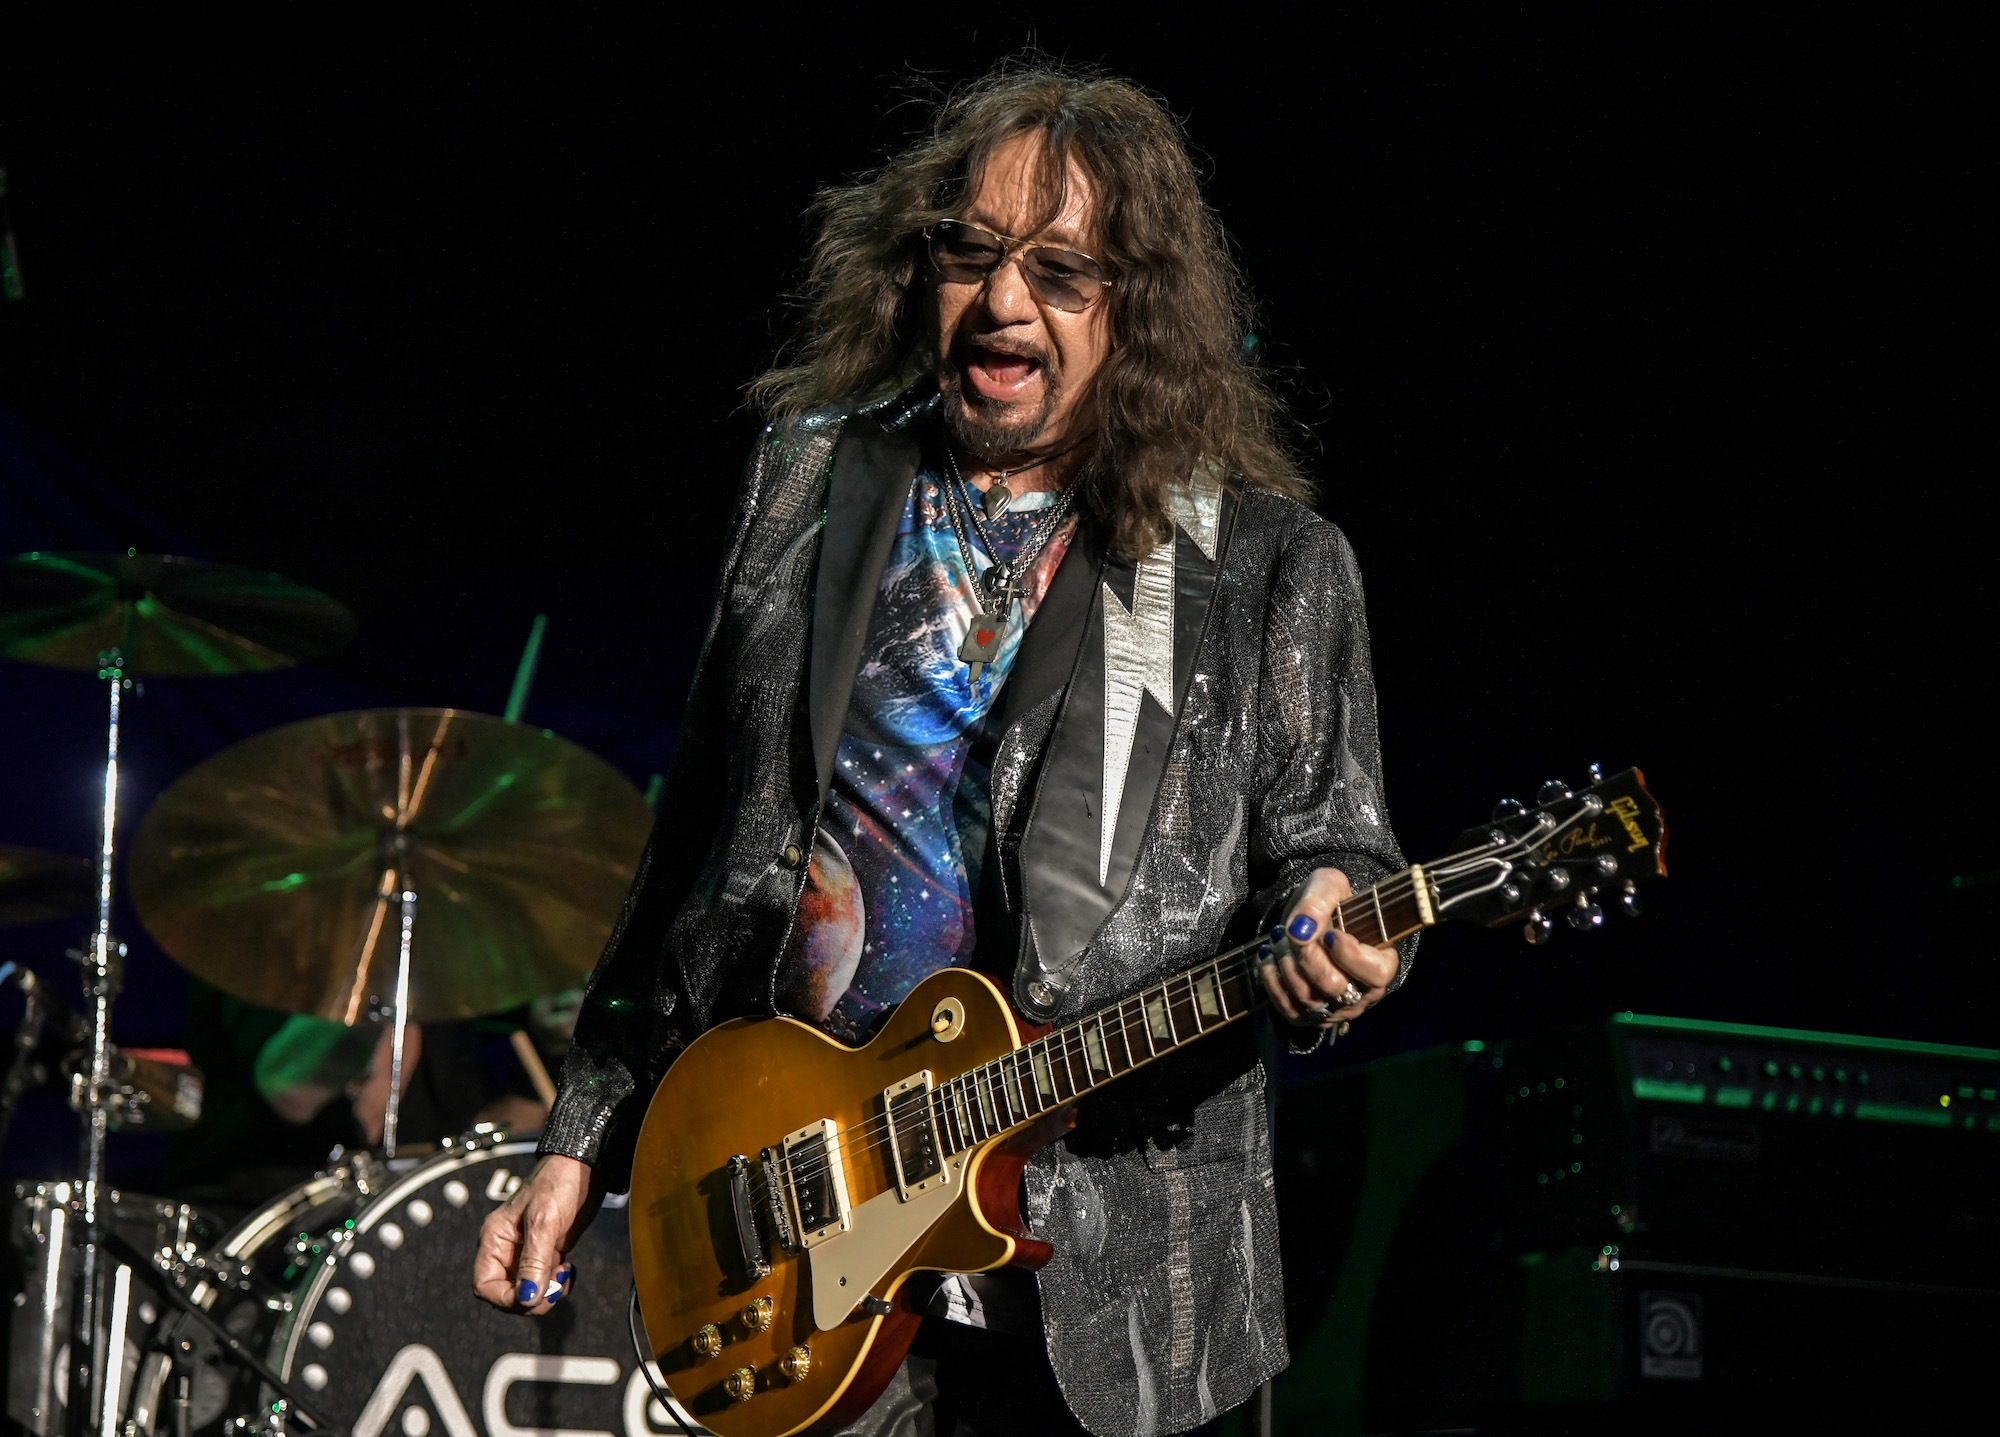 Ace Frehley Live at Huntington Bank Pavilion [GALLERY] 14